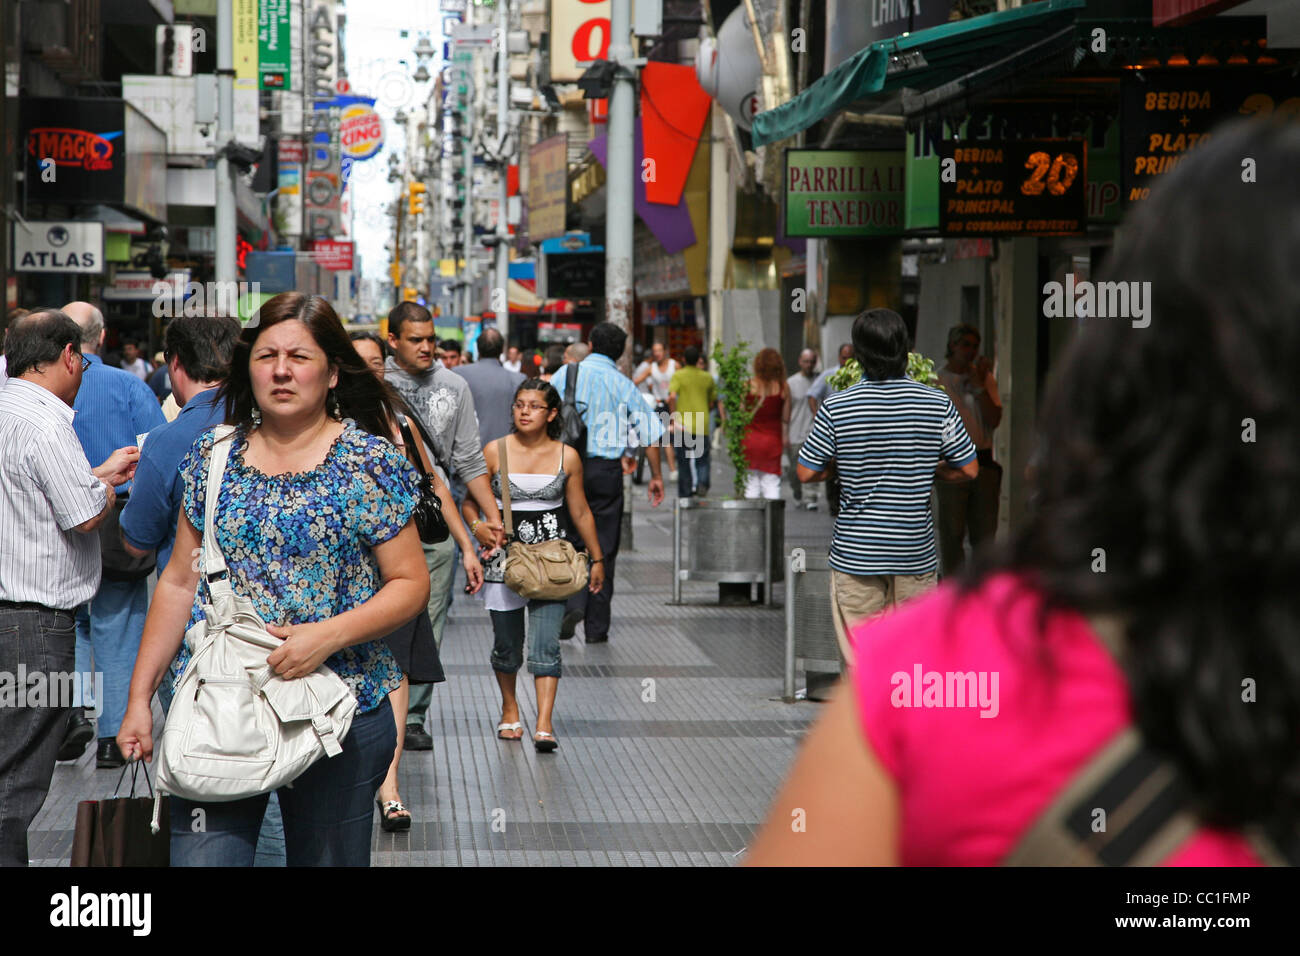 Florida Street / Calle Florida, an elegant shopping street in Downtown Buenos Aires, Argentina - Stock Image